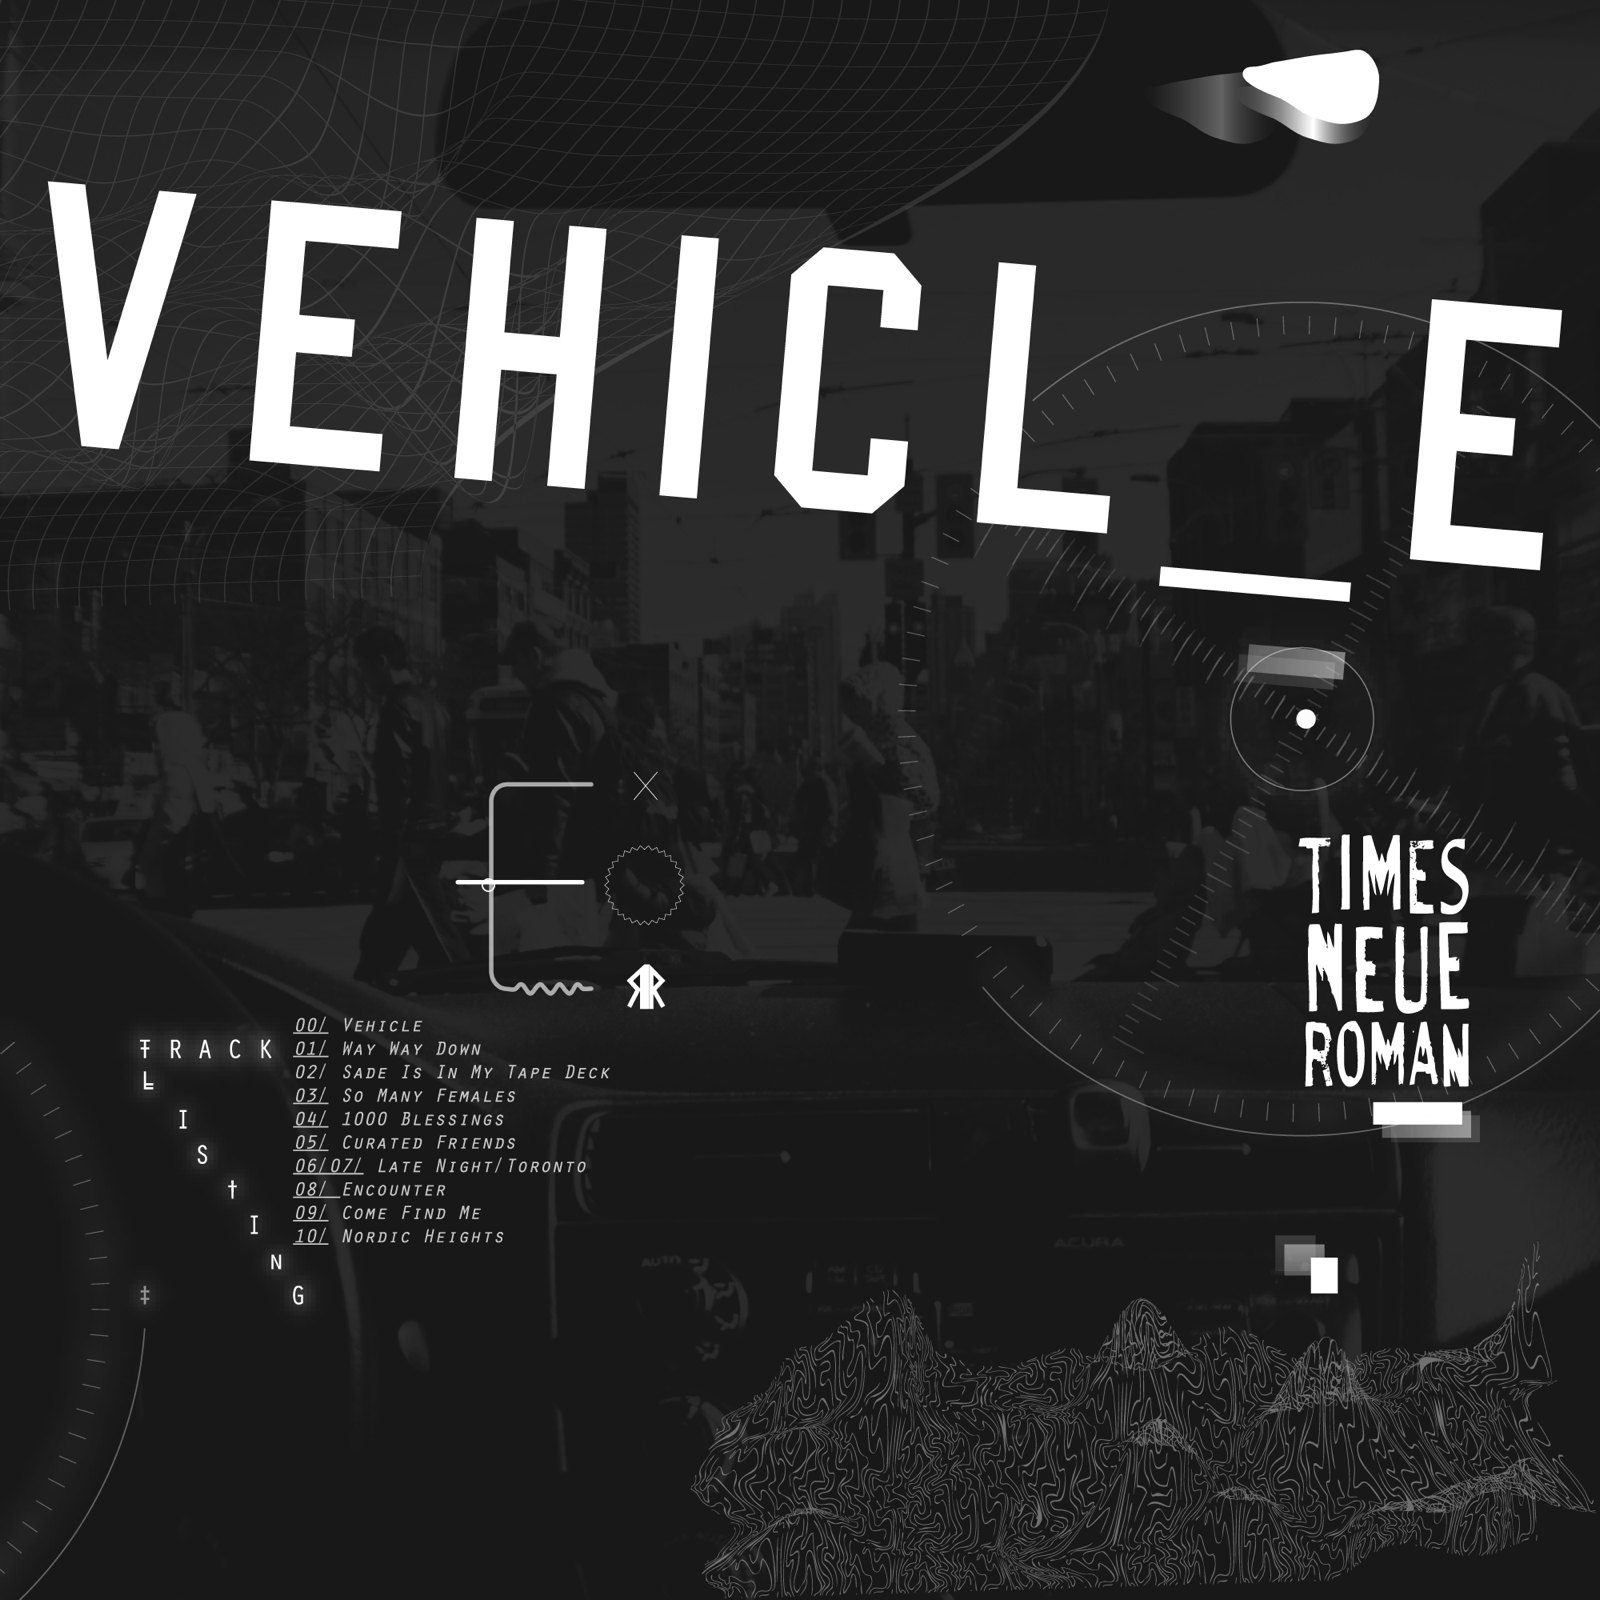 Times Neue Roman - Vehicle - artwork